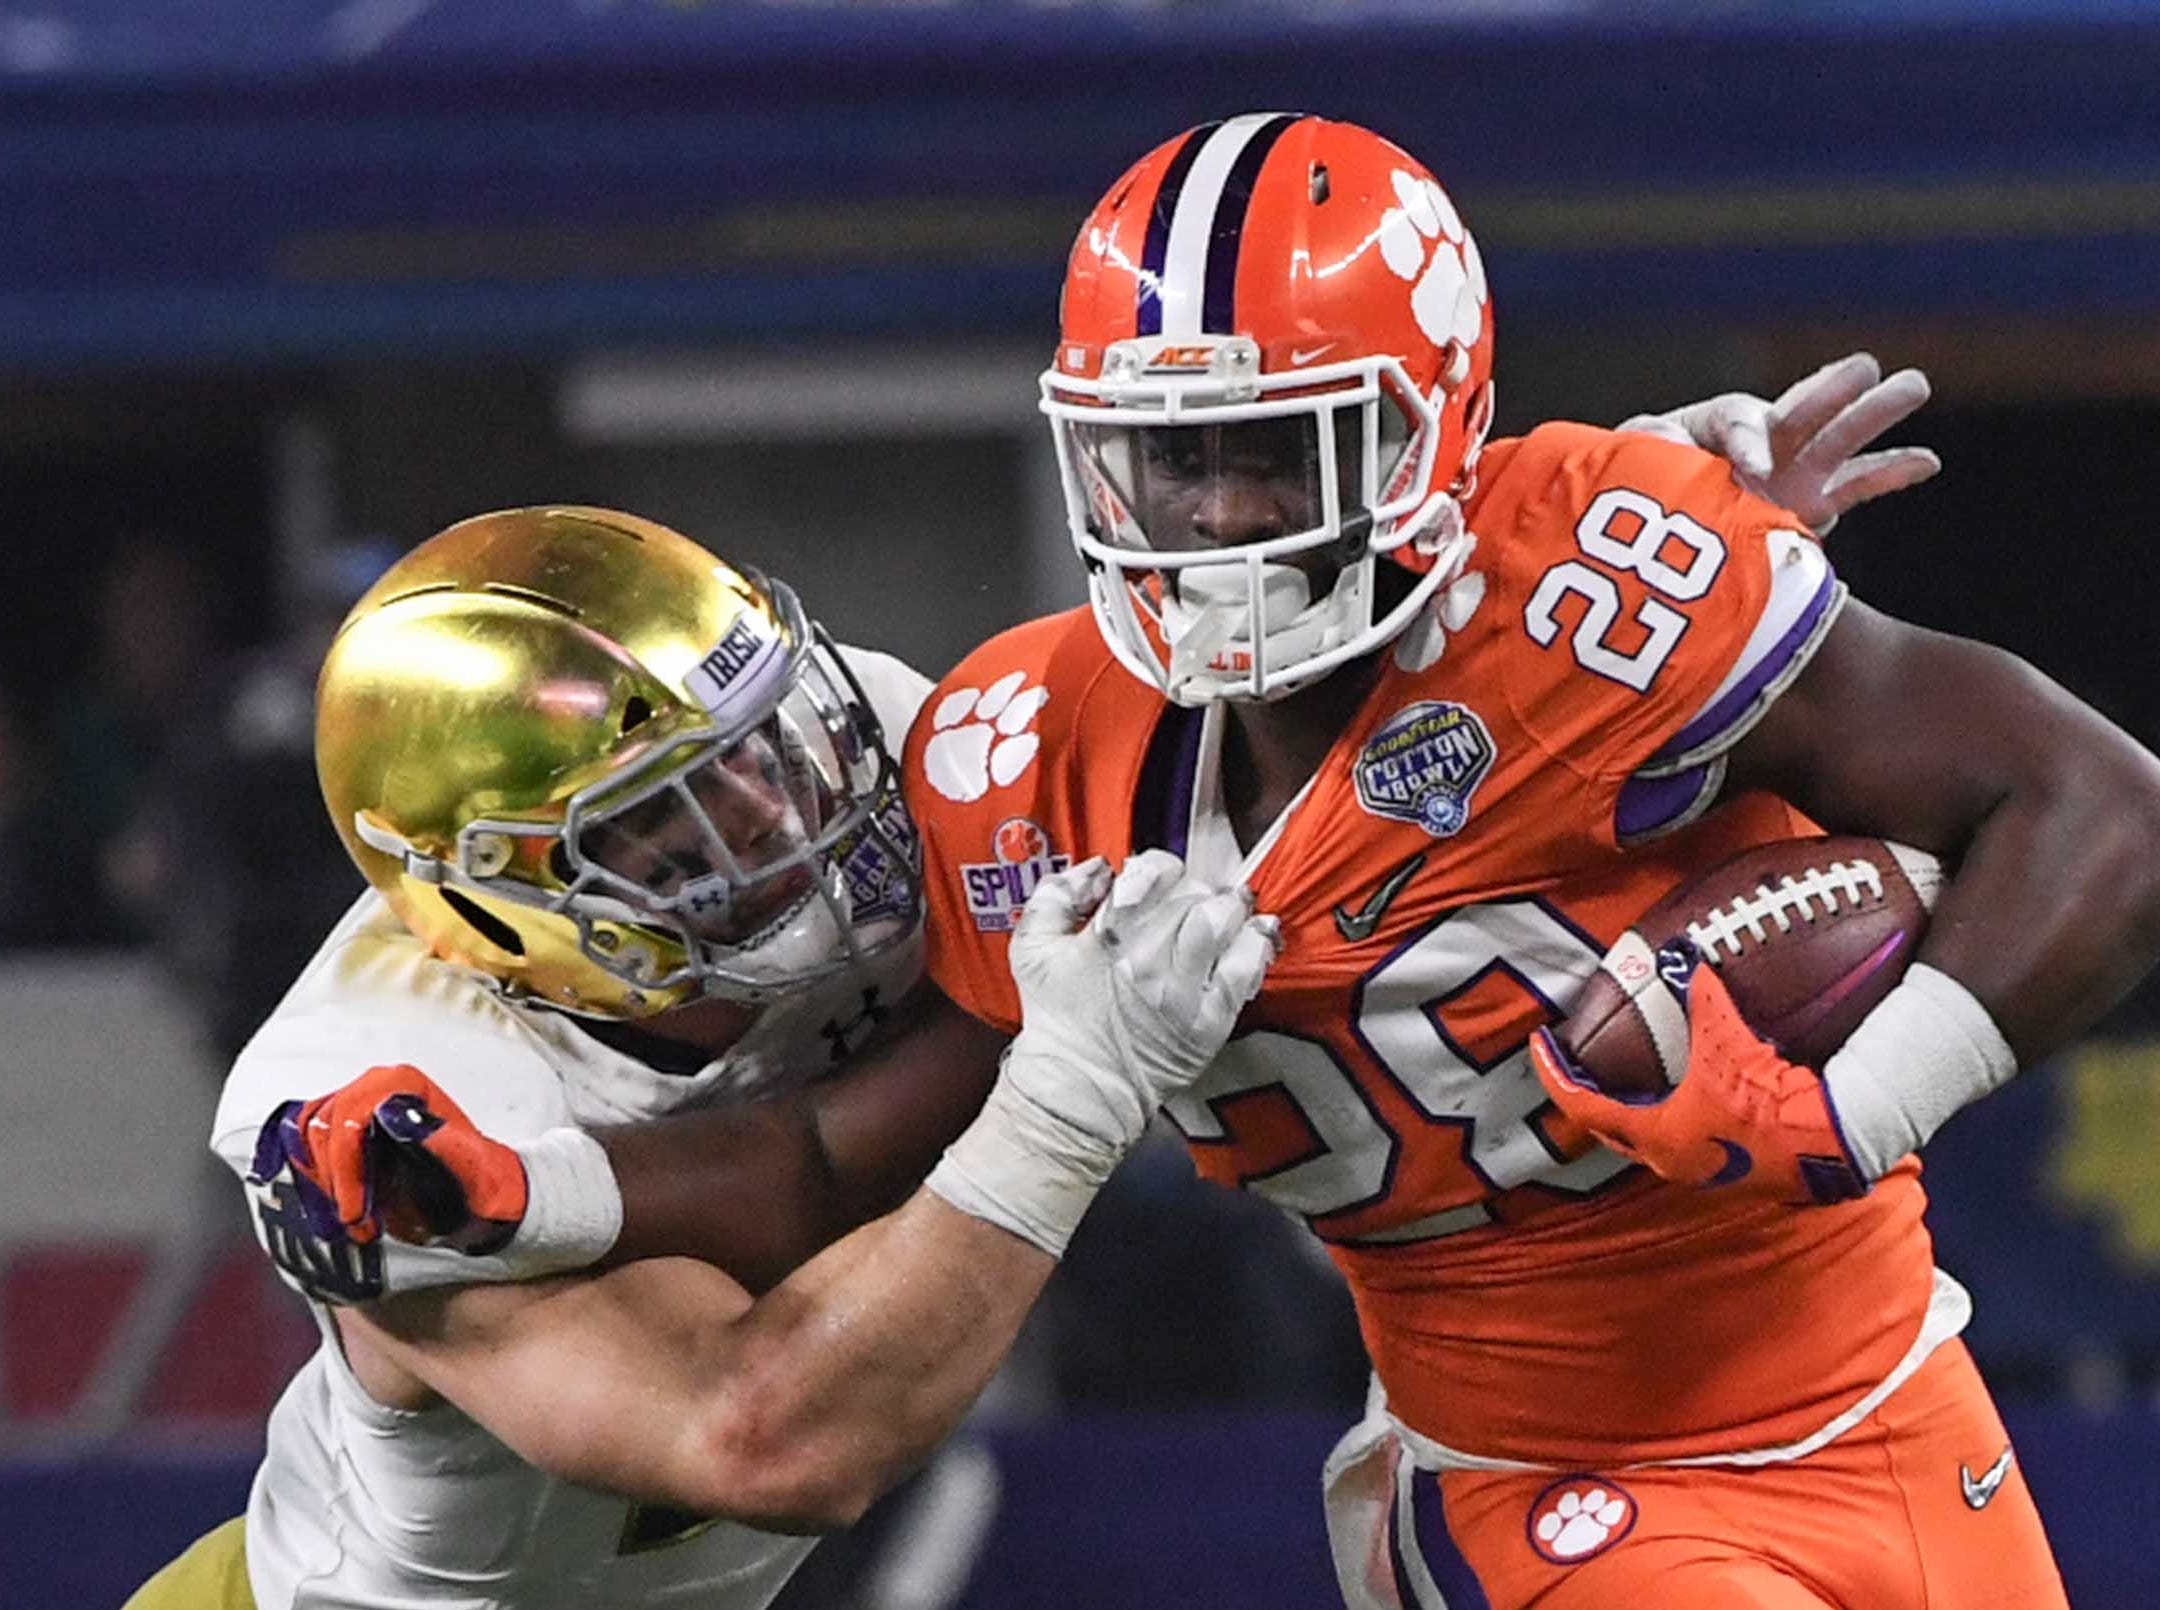 Clemson running back Tavien Feaster (28) runs against Notre Dame during the fourth quarter of the College Football Playoff Semifinal at the Goodyear Cotton Bowl Classic at AT&T Stadium in Arlington, Texas Saturday, December 29, 2018.